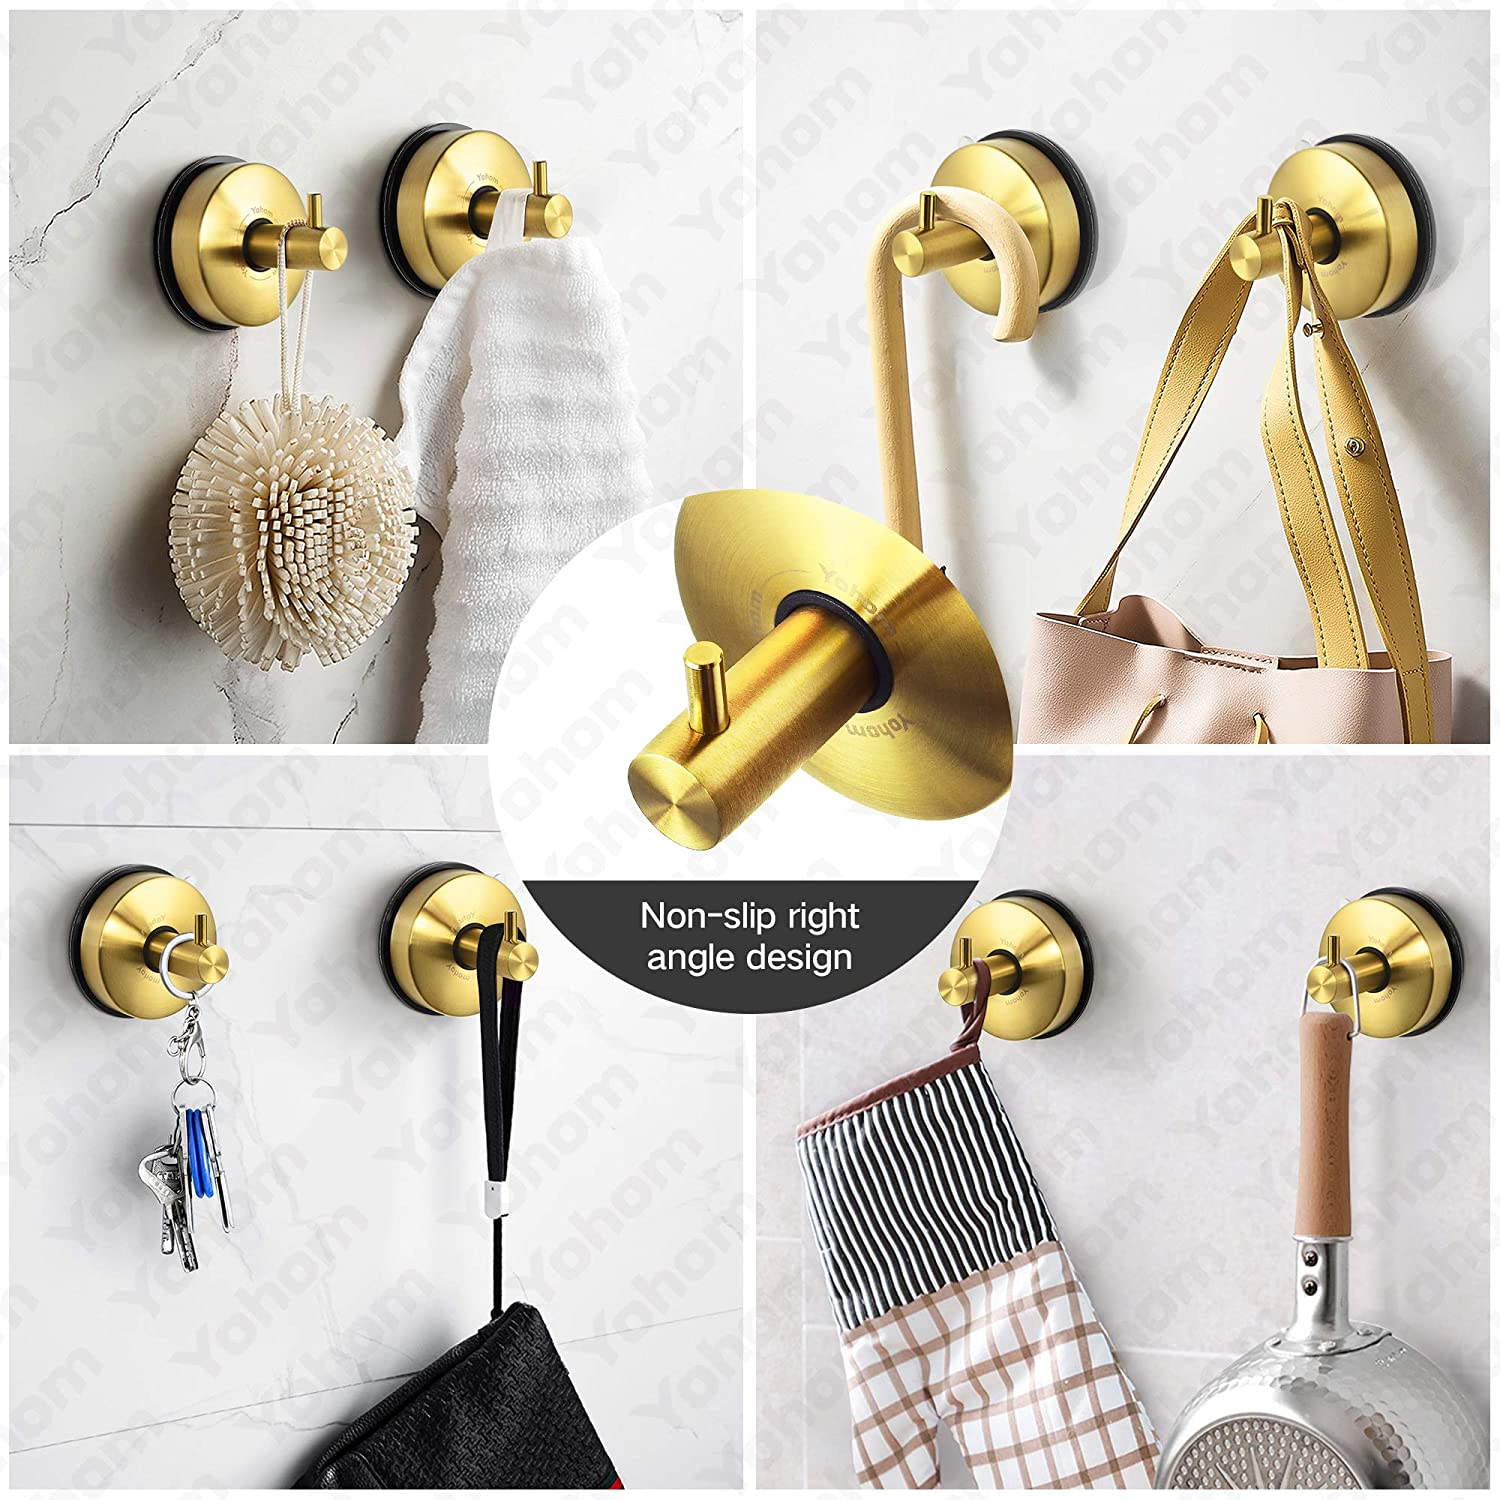 Yohom 2Pcs Vacuum Suction Cup Towel Hooks for Shower Bathroom Suction Hook Towel Holder Rack Kitchen Organizer for Robe Loofah Coat Stainless Steel Brushed Gold - -